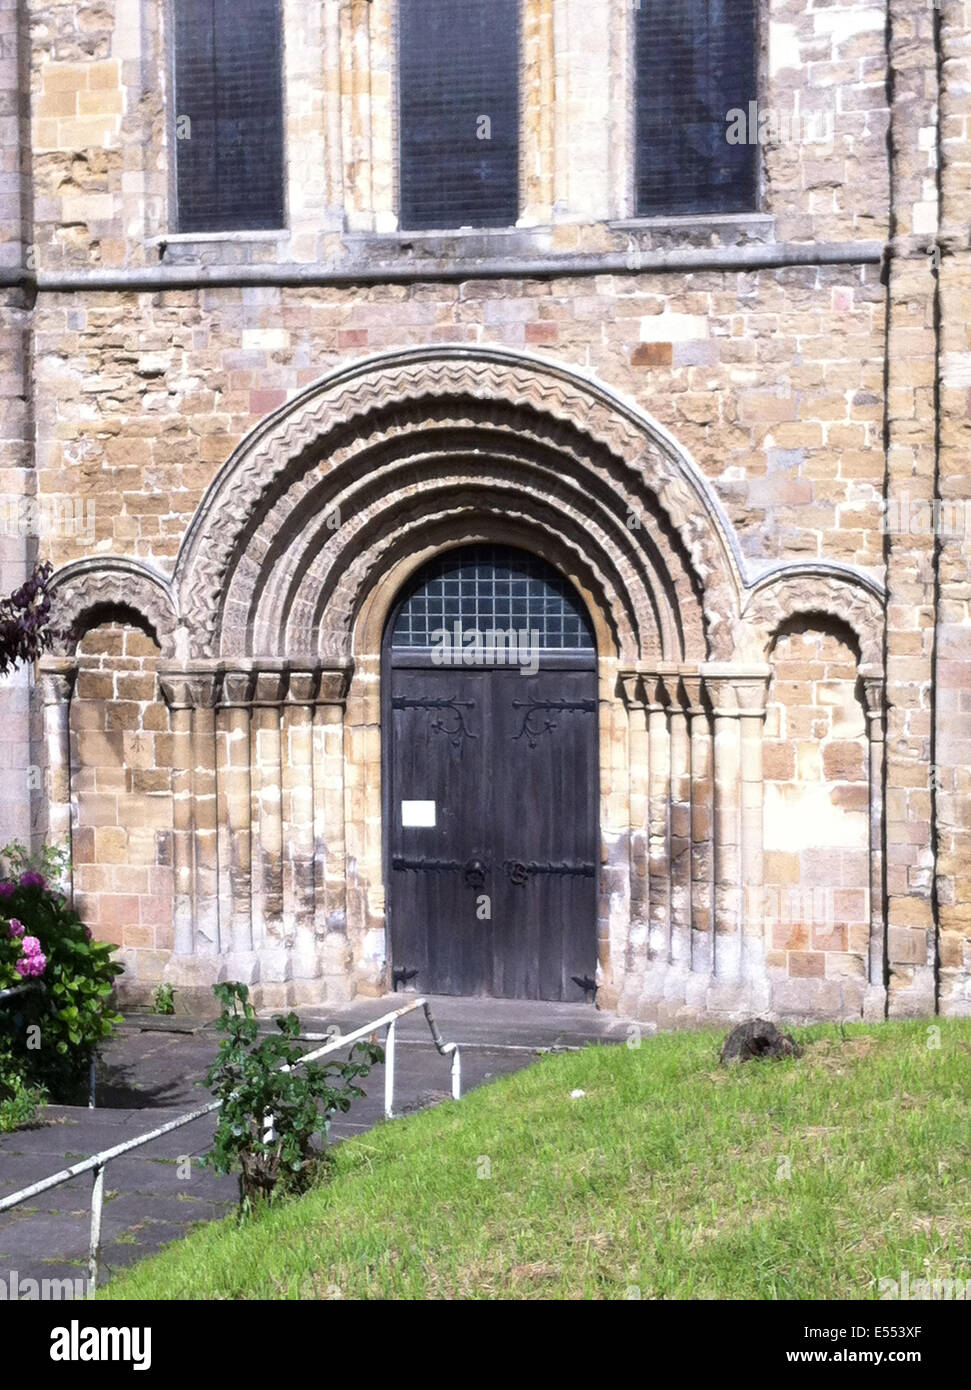 CHEPSTOW, Wales. Norman doorway of St Mary's Church. Photo Tony Gale - Stock Image